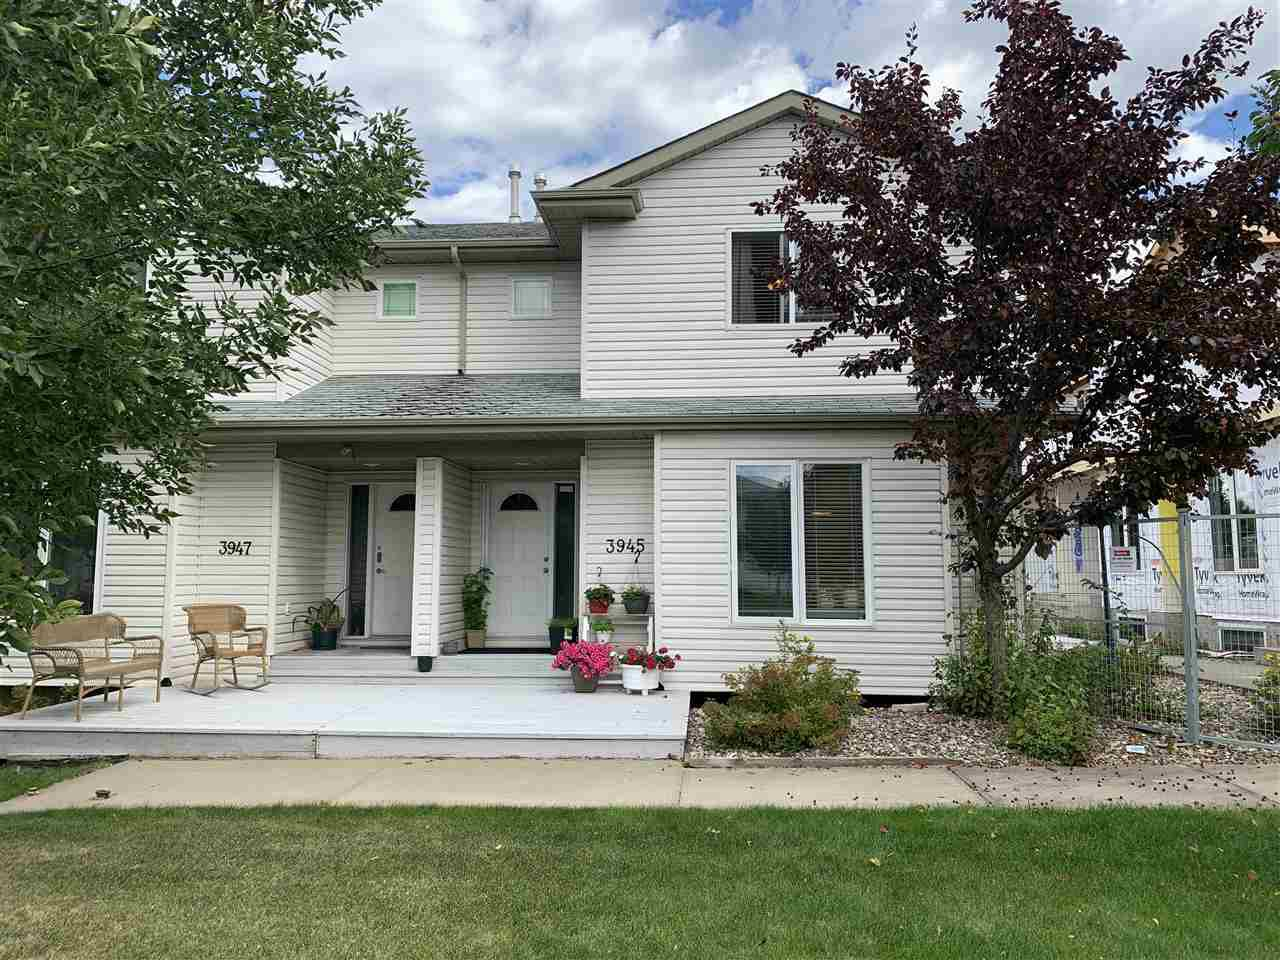 Main Photo: 3945 38 Street in Edmonton: Zone 29 House Half Duplex for sale : MLS®# E4214230